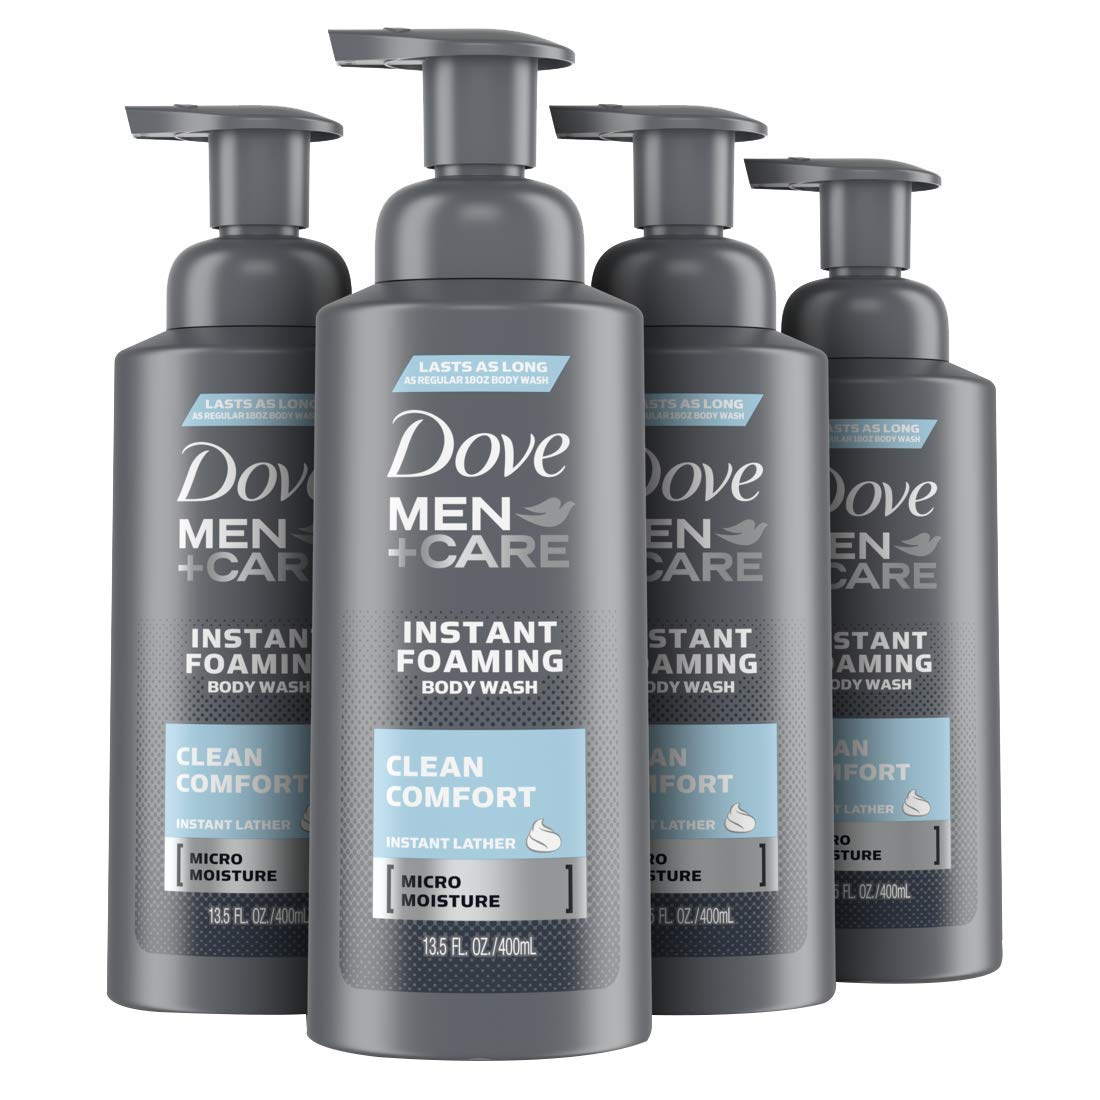 Dove Men+Care Foaming Body Wash to Hydrate Skin Clean Comfort Effectively Washes Away Bacteria While Nourishing Your Skin 13.5 oz 4 Count : Beauty